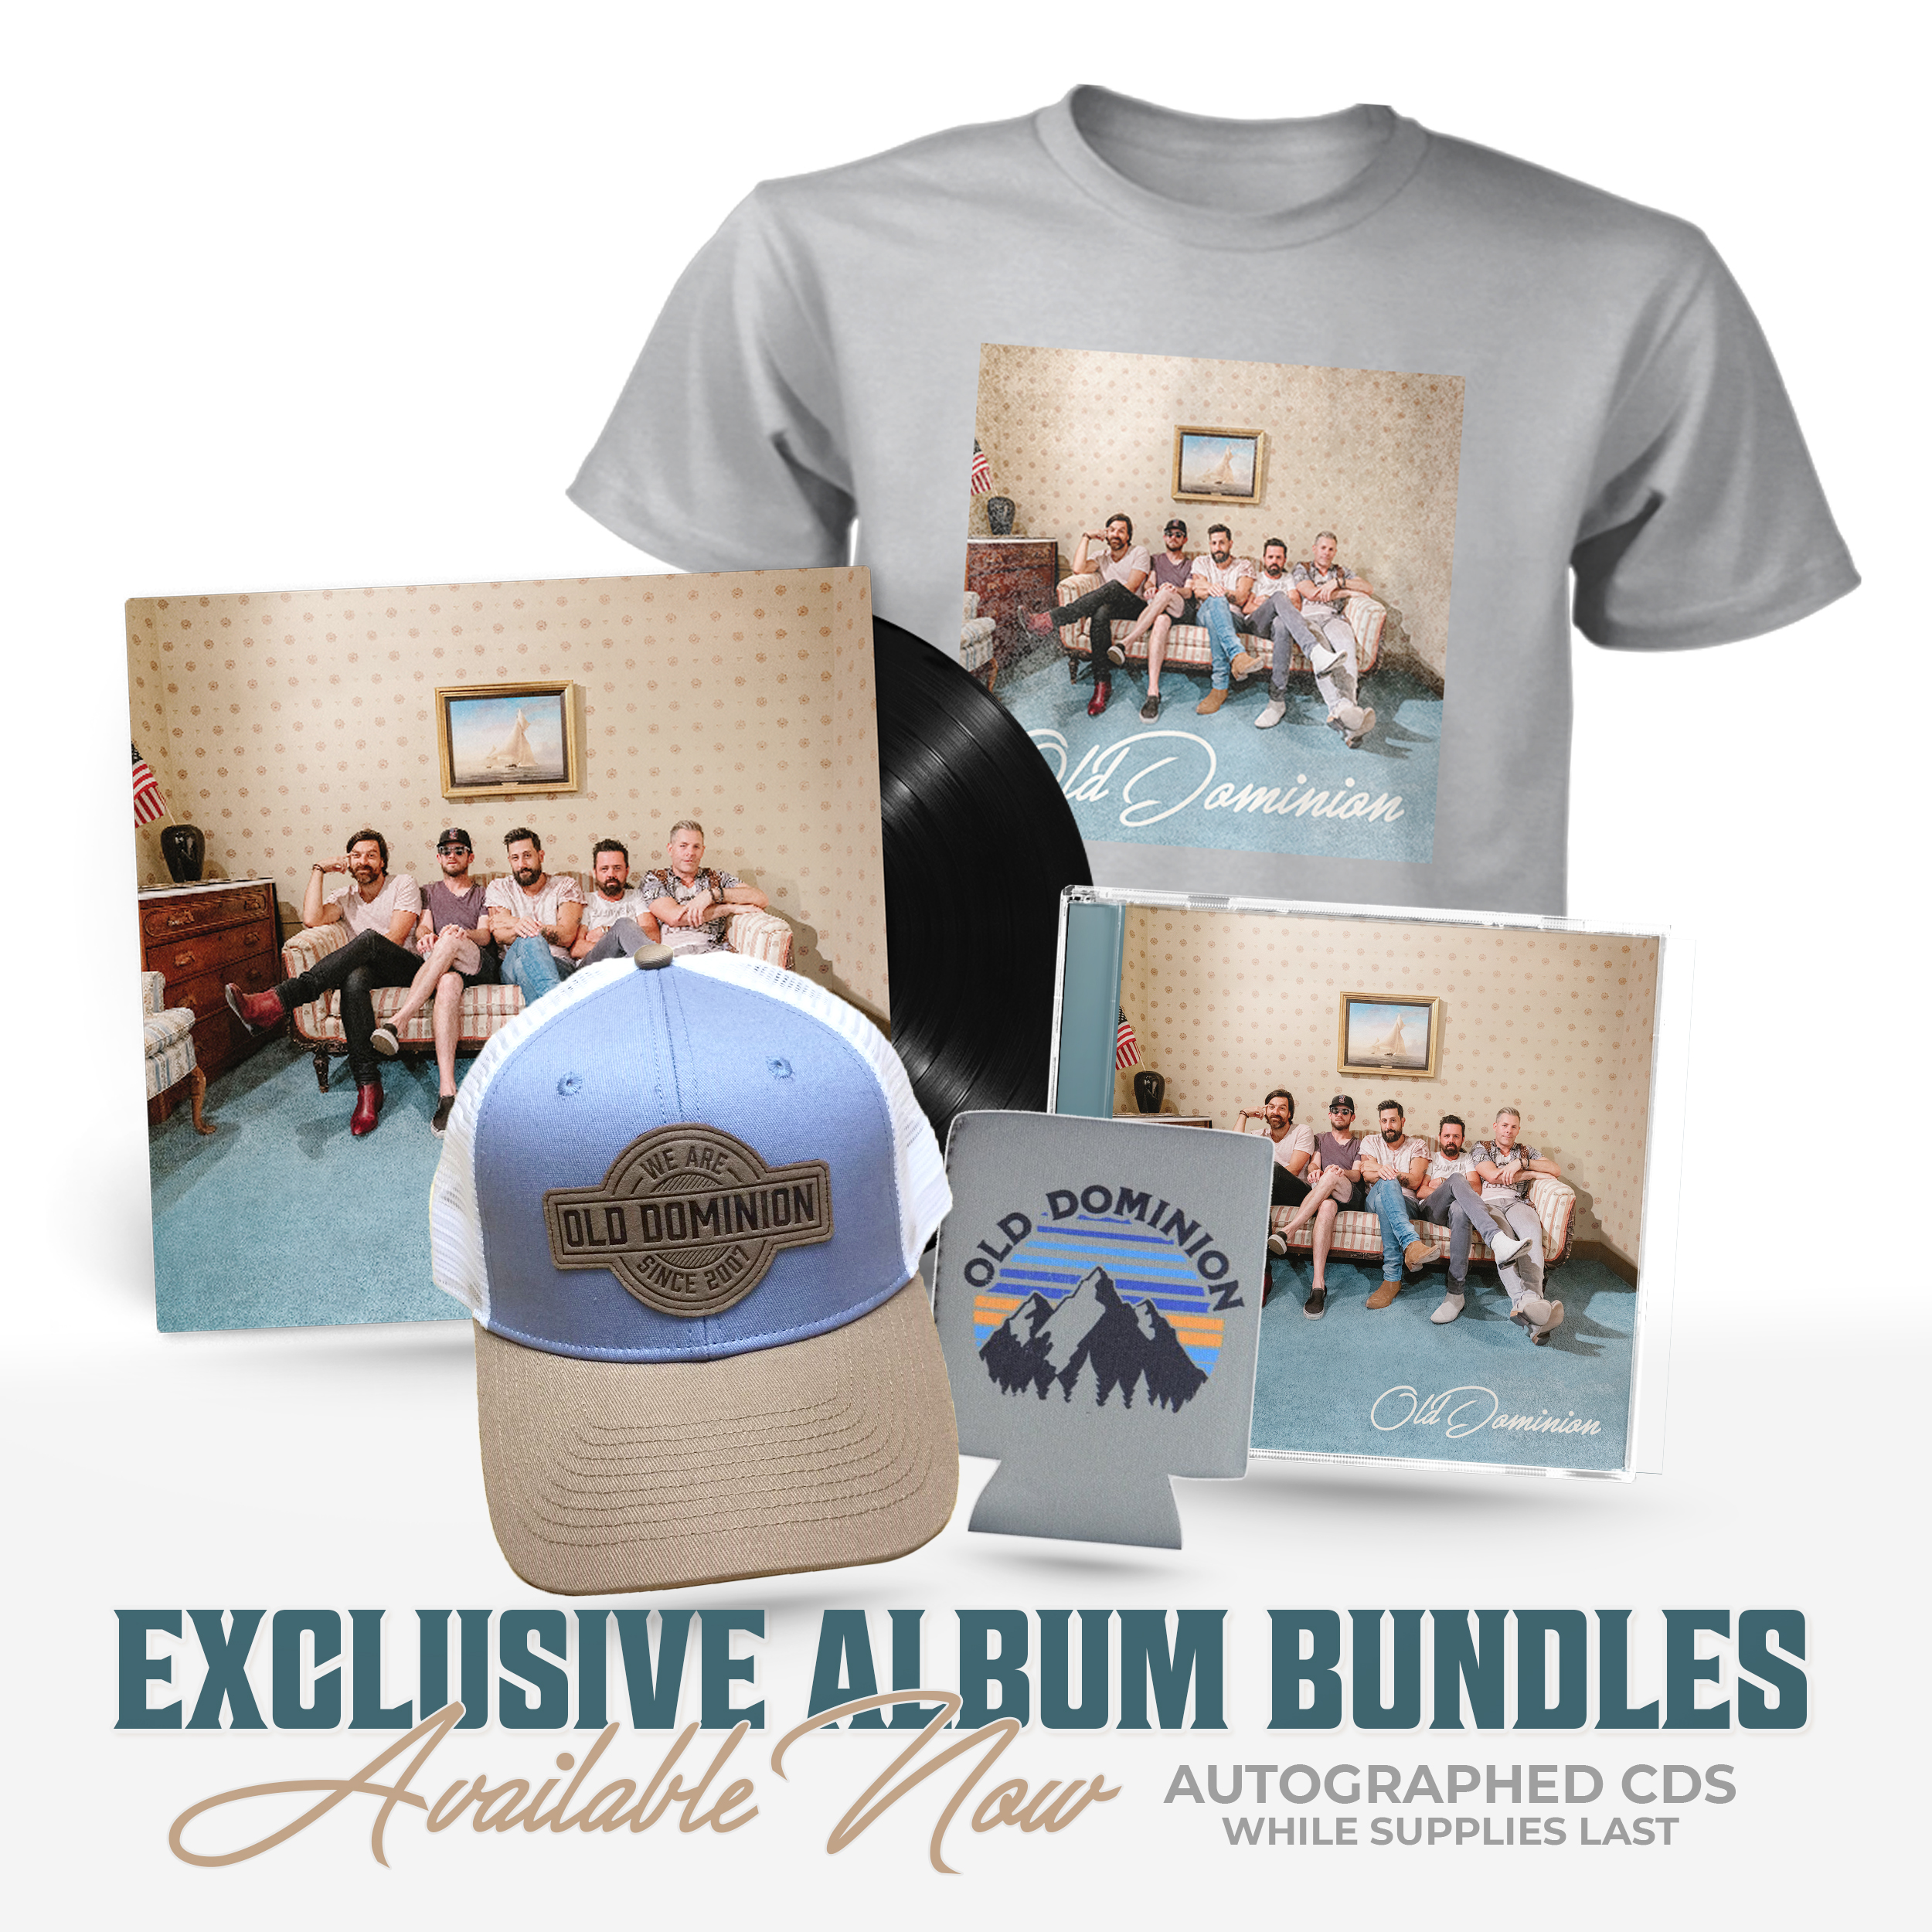 New Album & Exclusive Bundles image